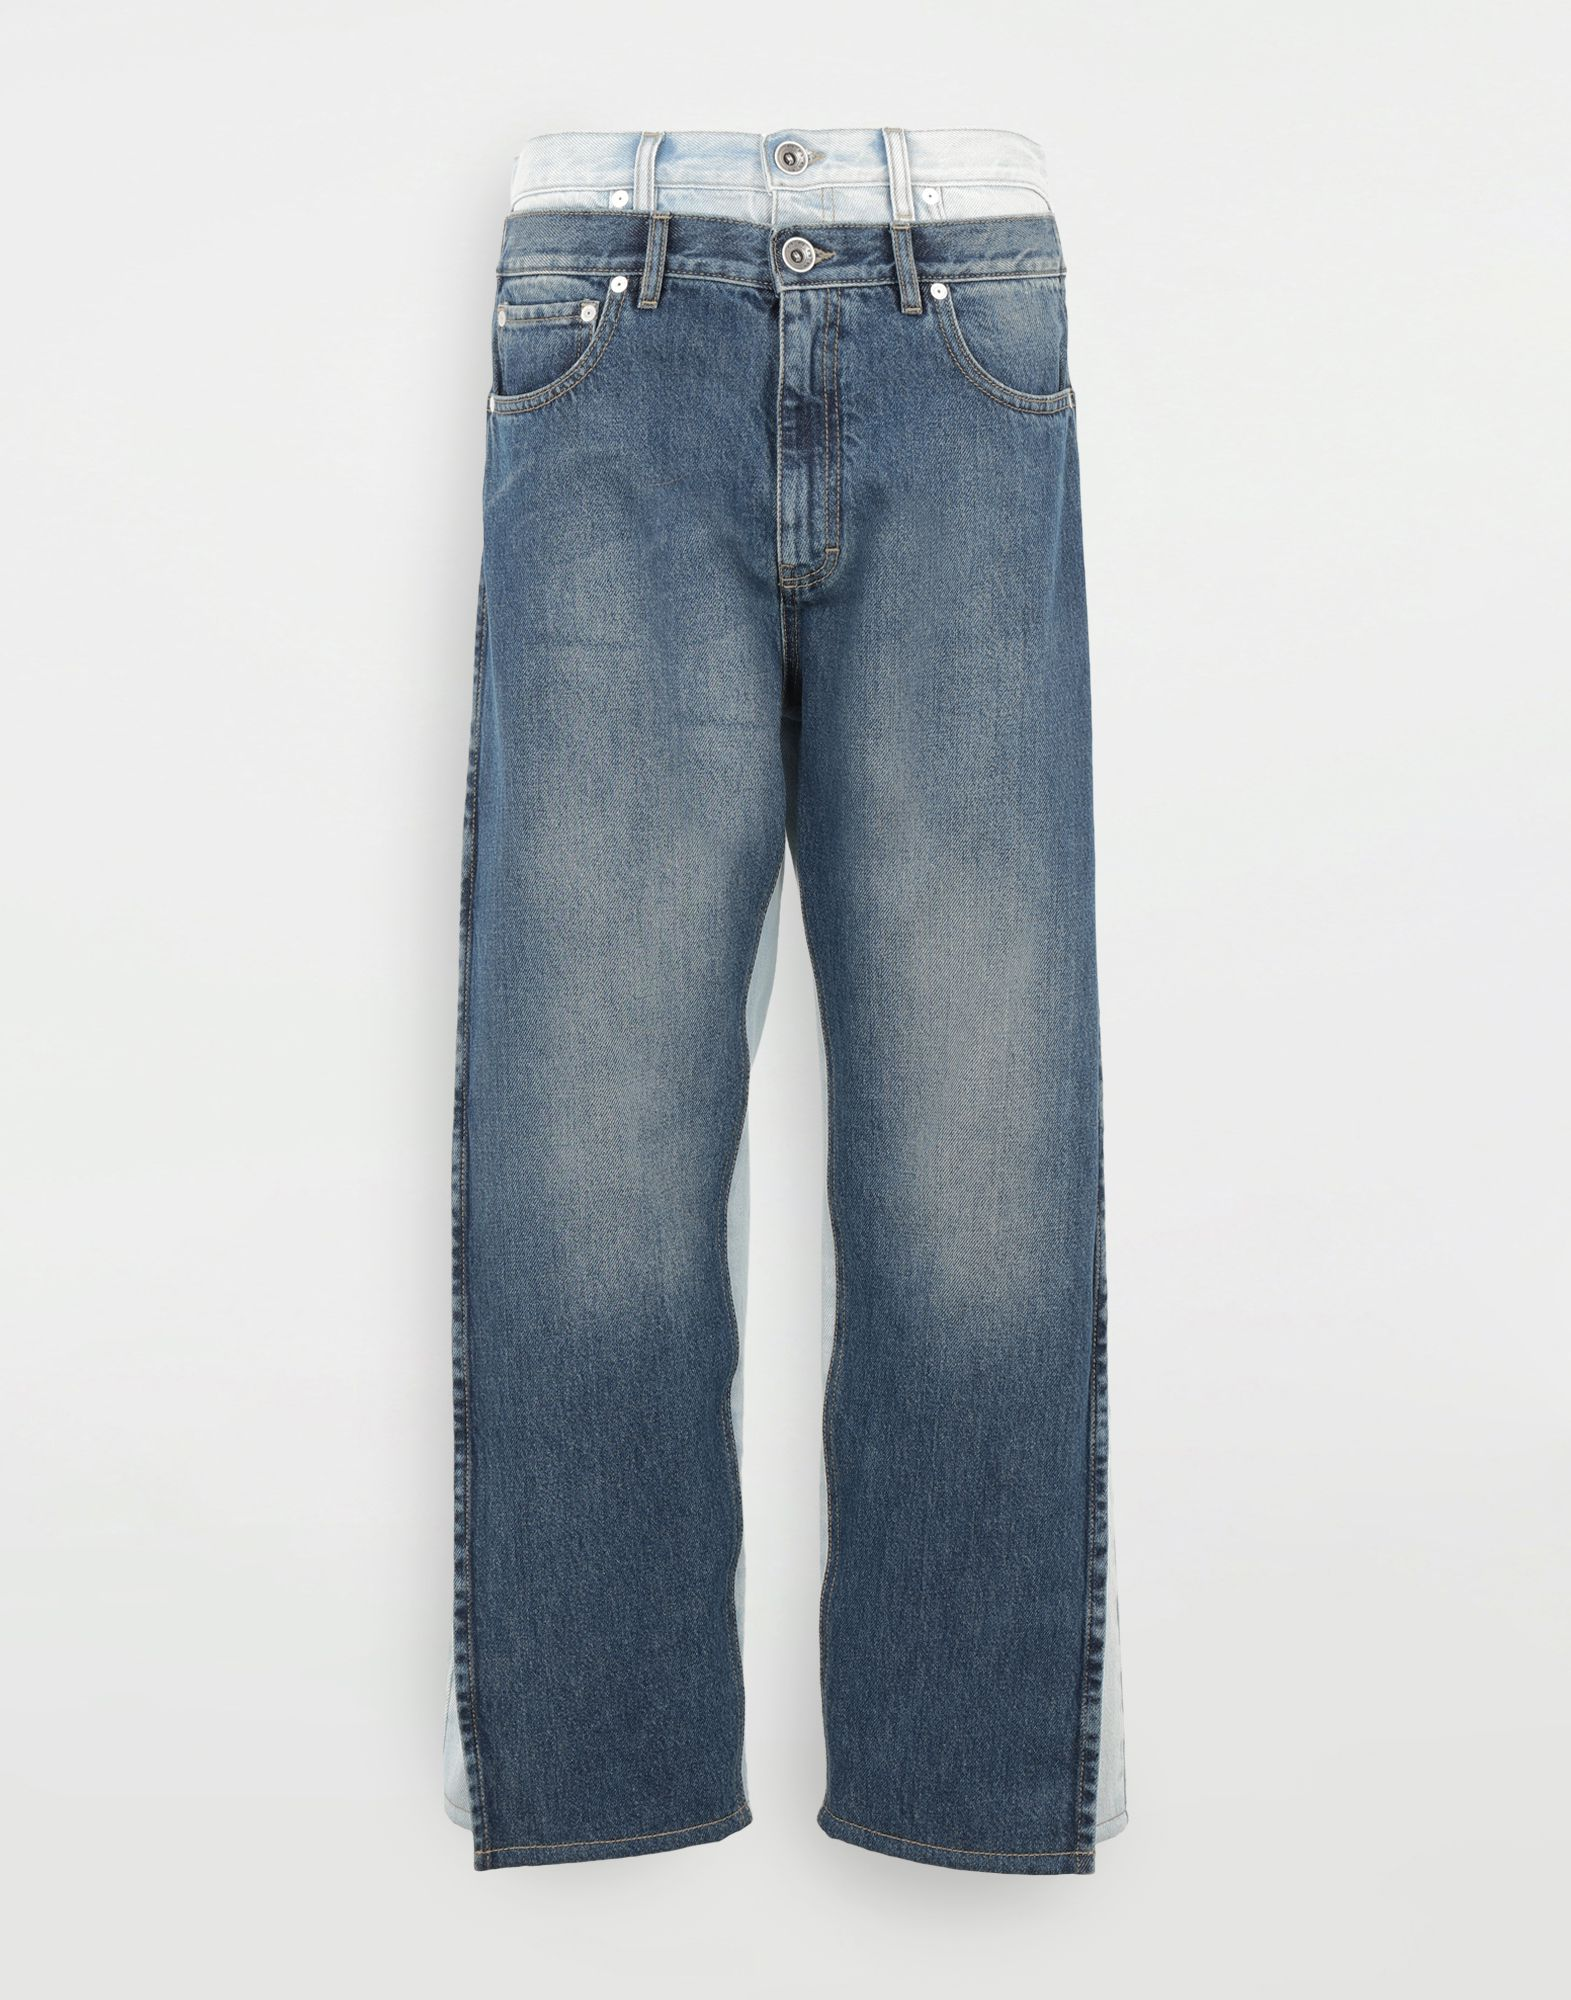 MAISON MARGIELA Spliced jeans Jeans Woman f